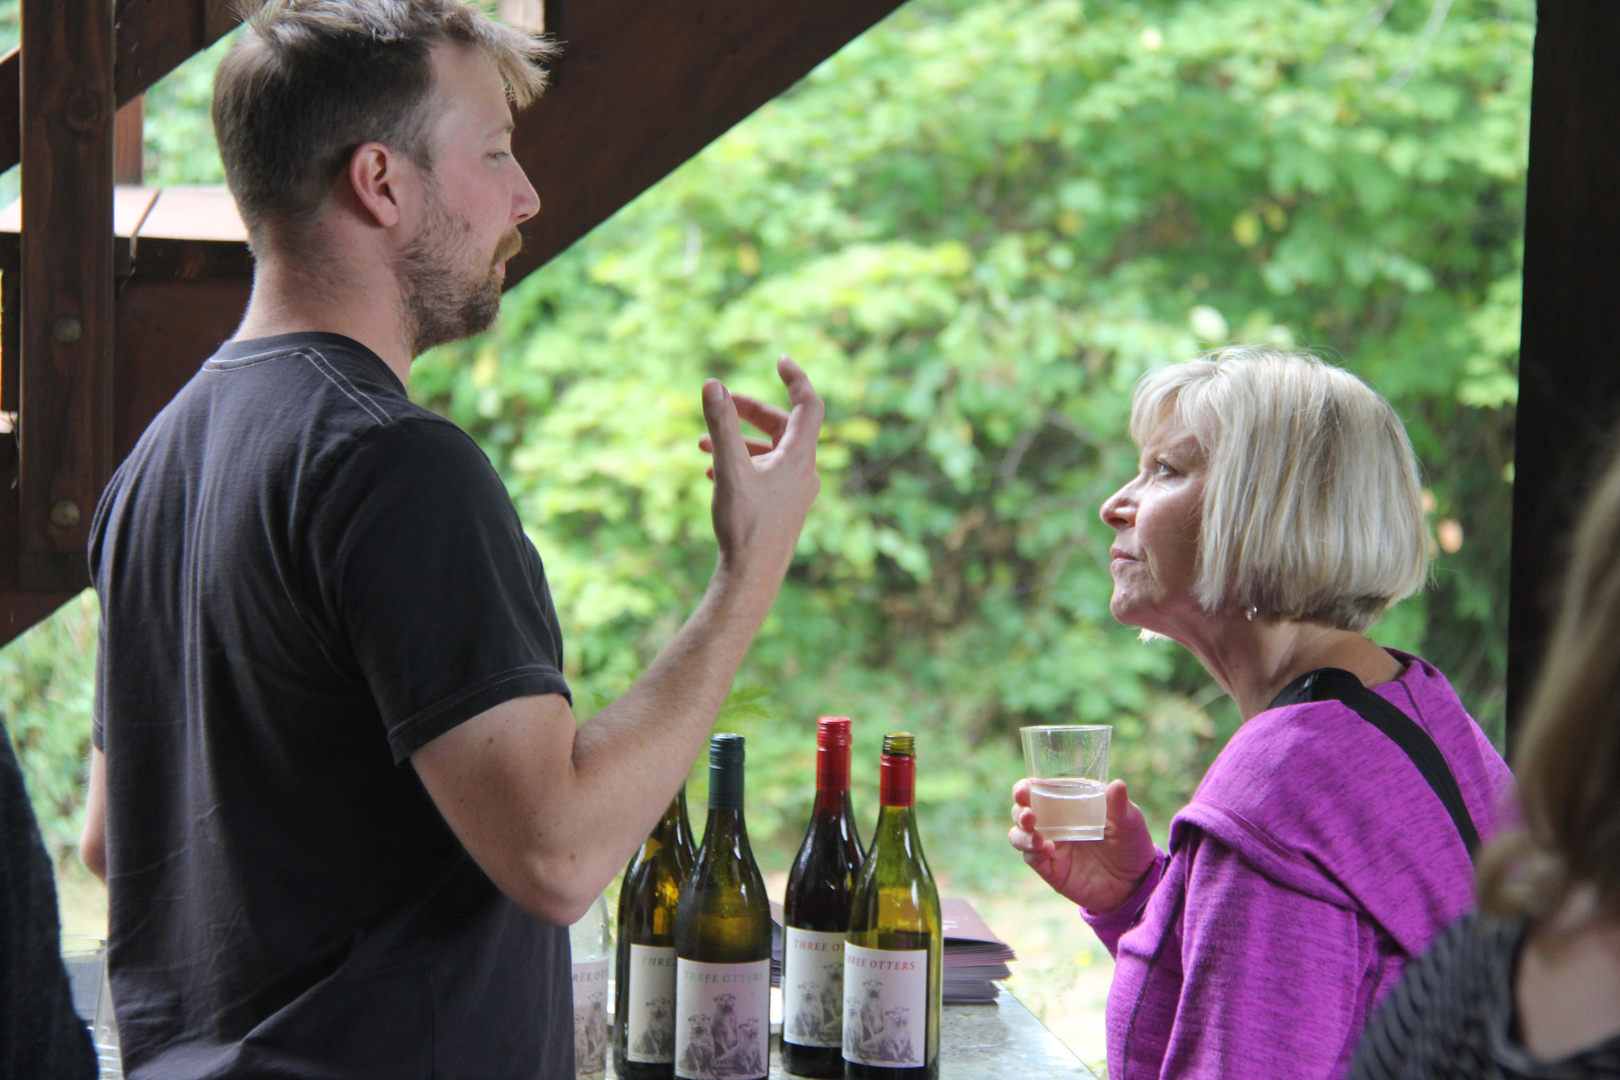 Winemaker Alex Fullerton at our Open House